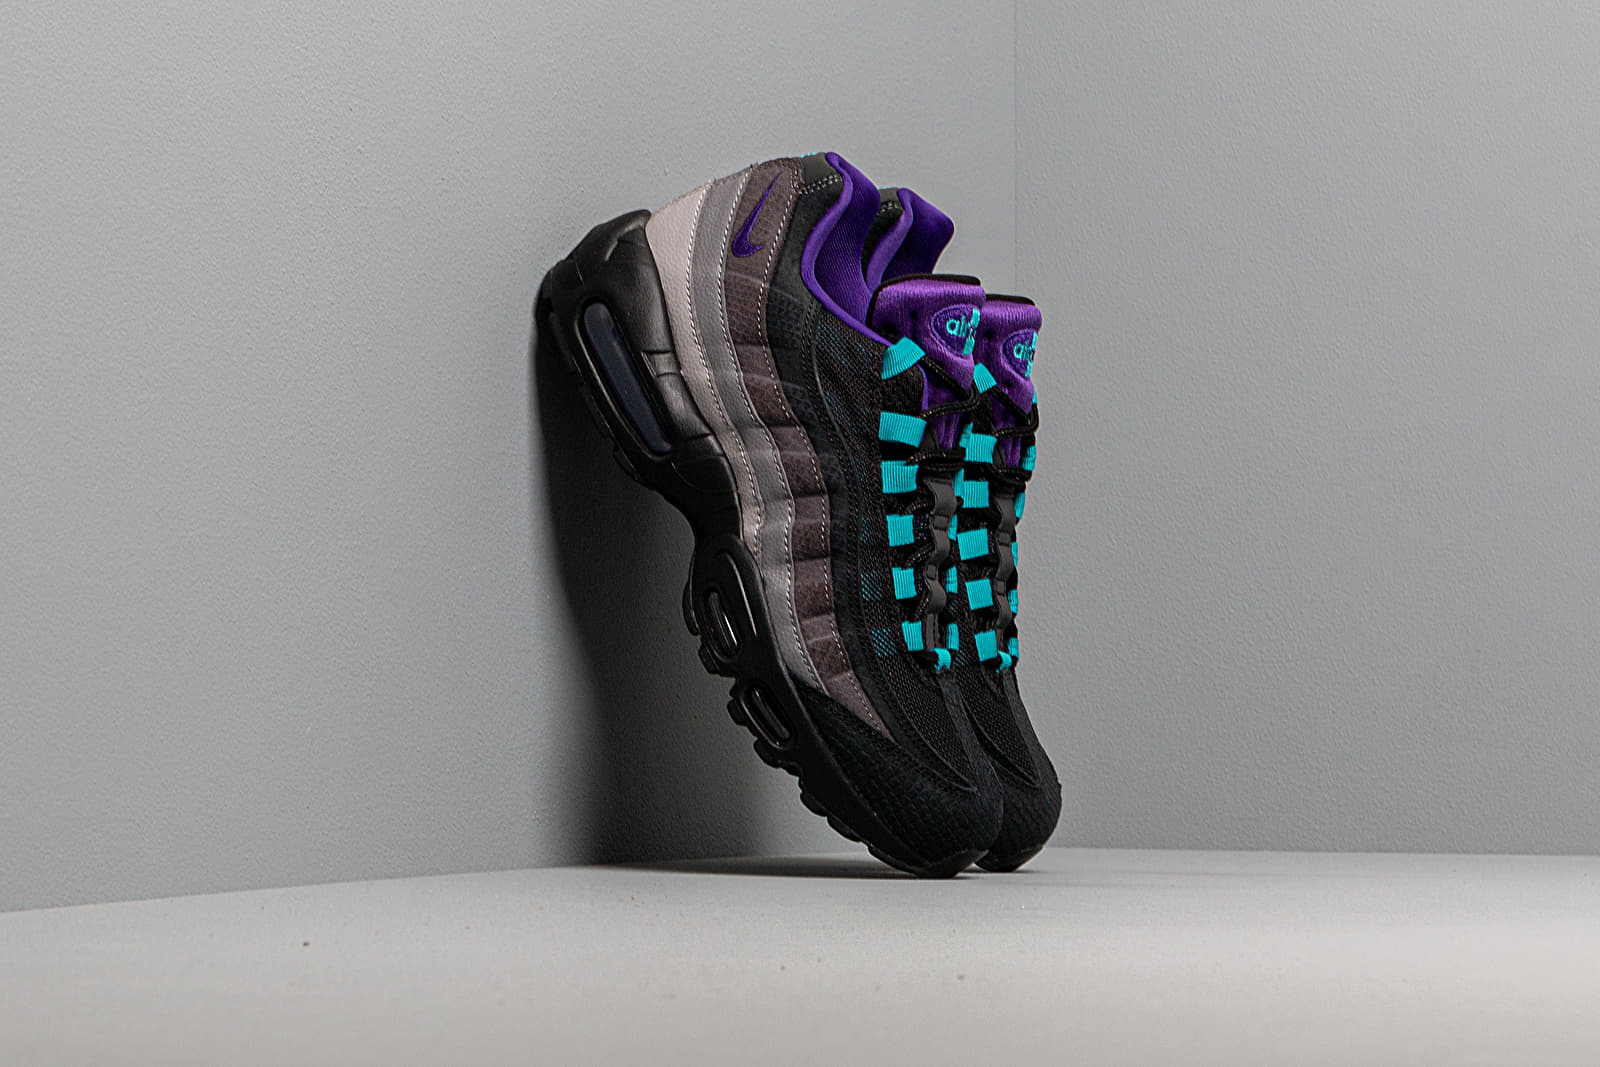 Nike Air Max 95 Lv8 Black Court Purple Teal Nebula | Footshop